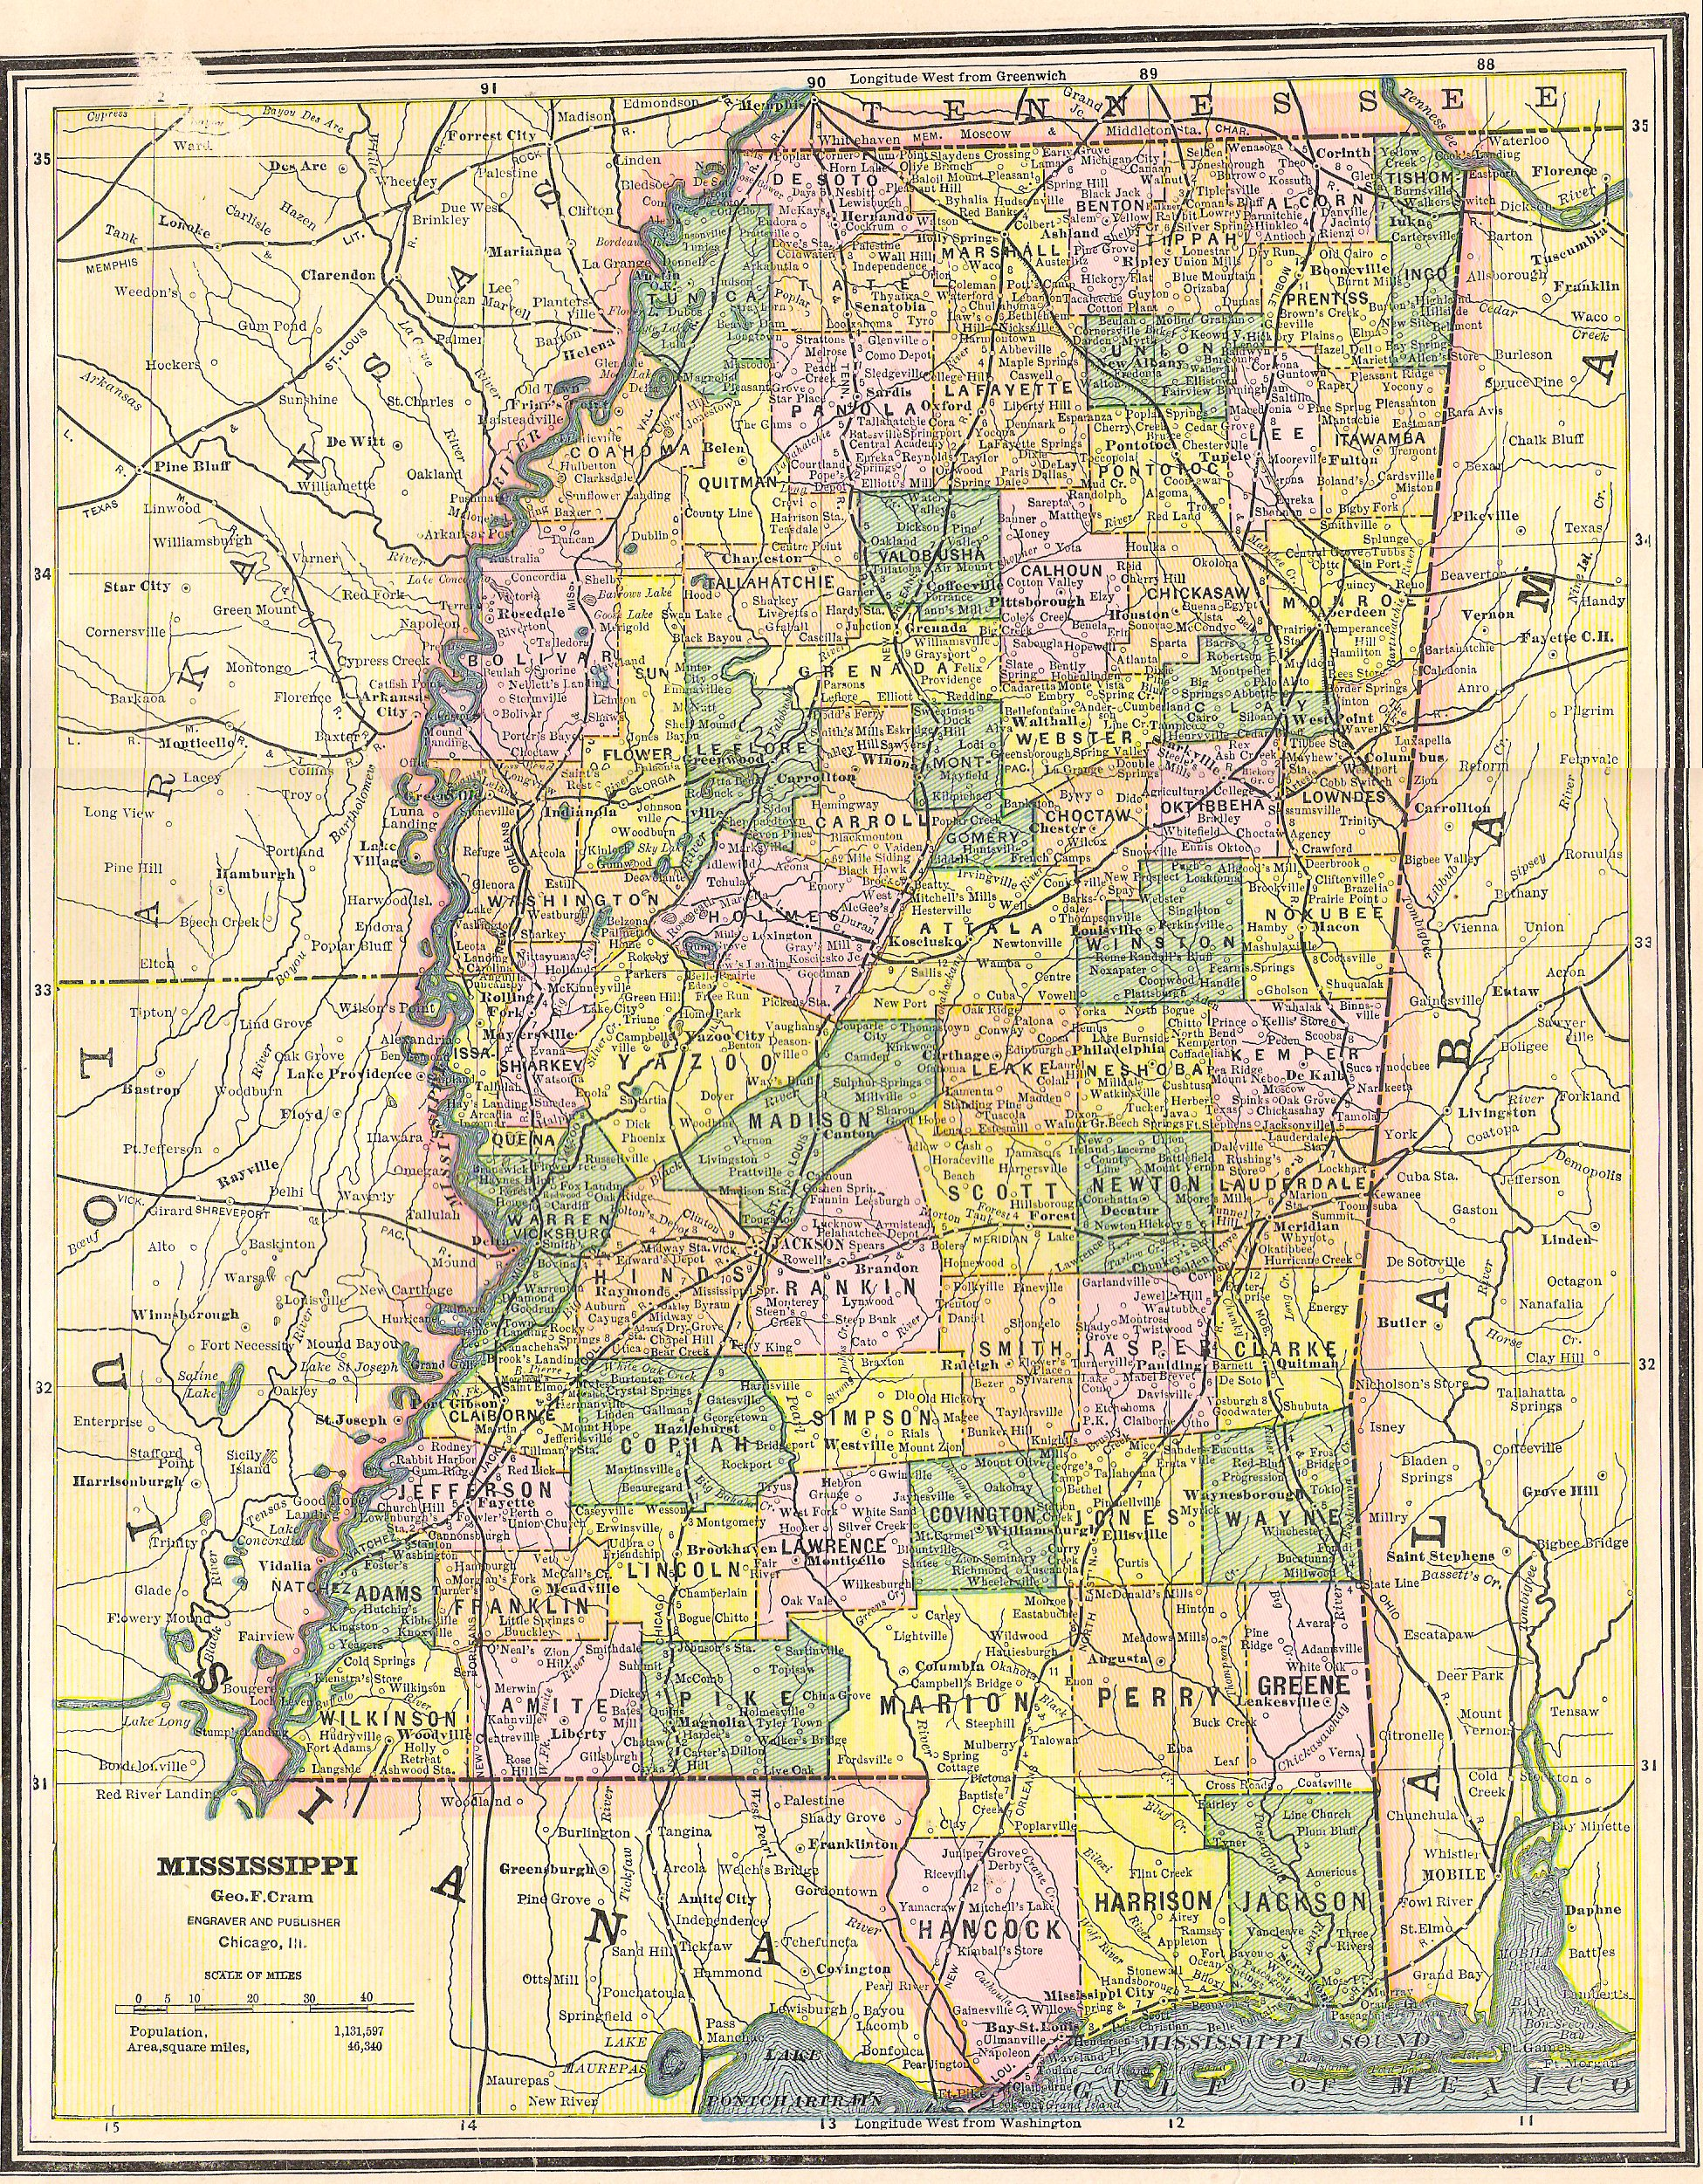 Benton County Mississippi Maps At Mississippi Genealogy - Missisippi map